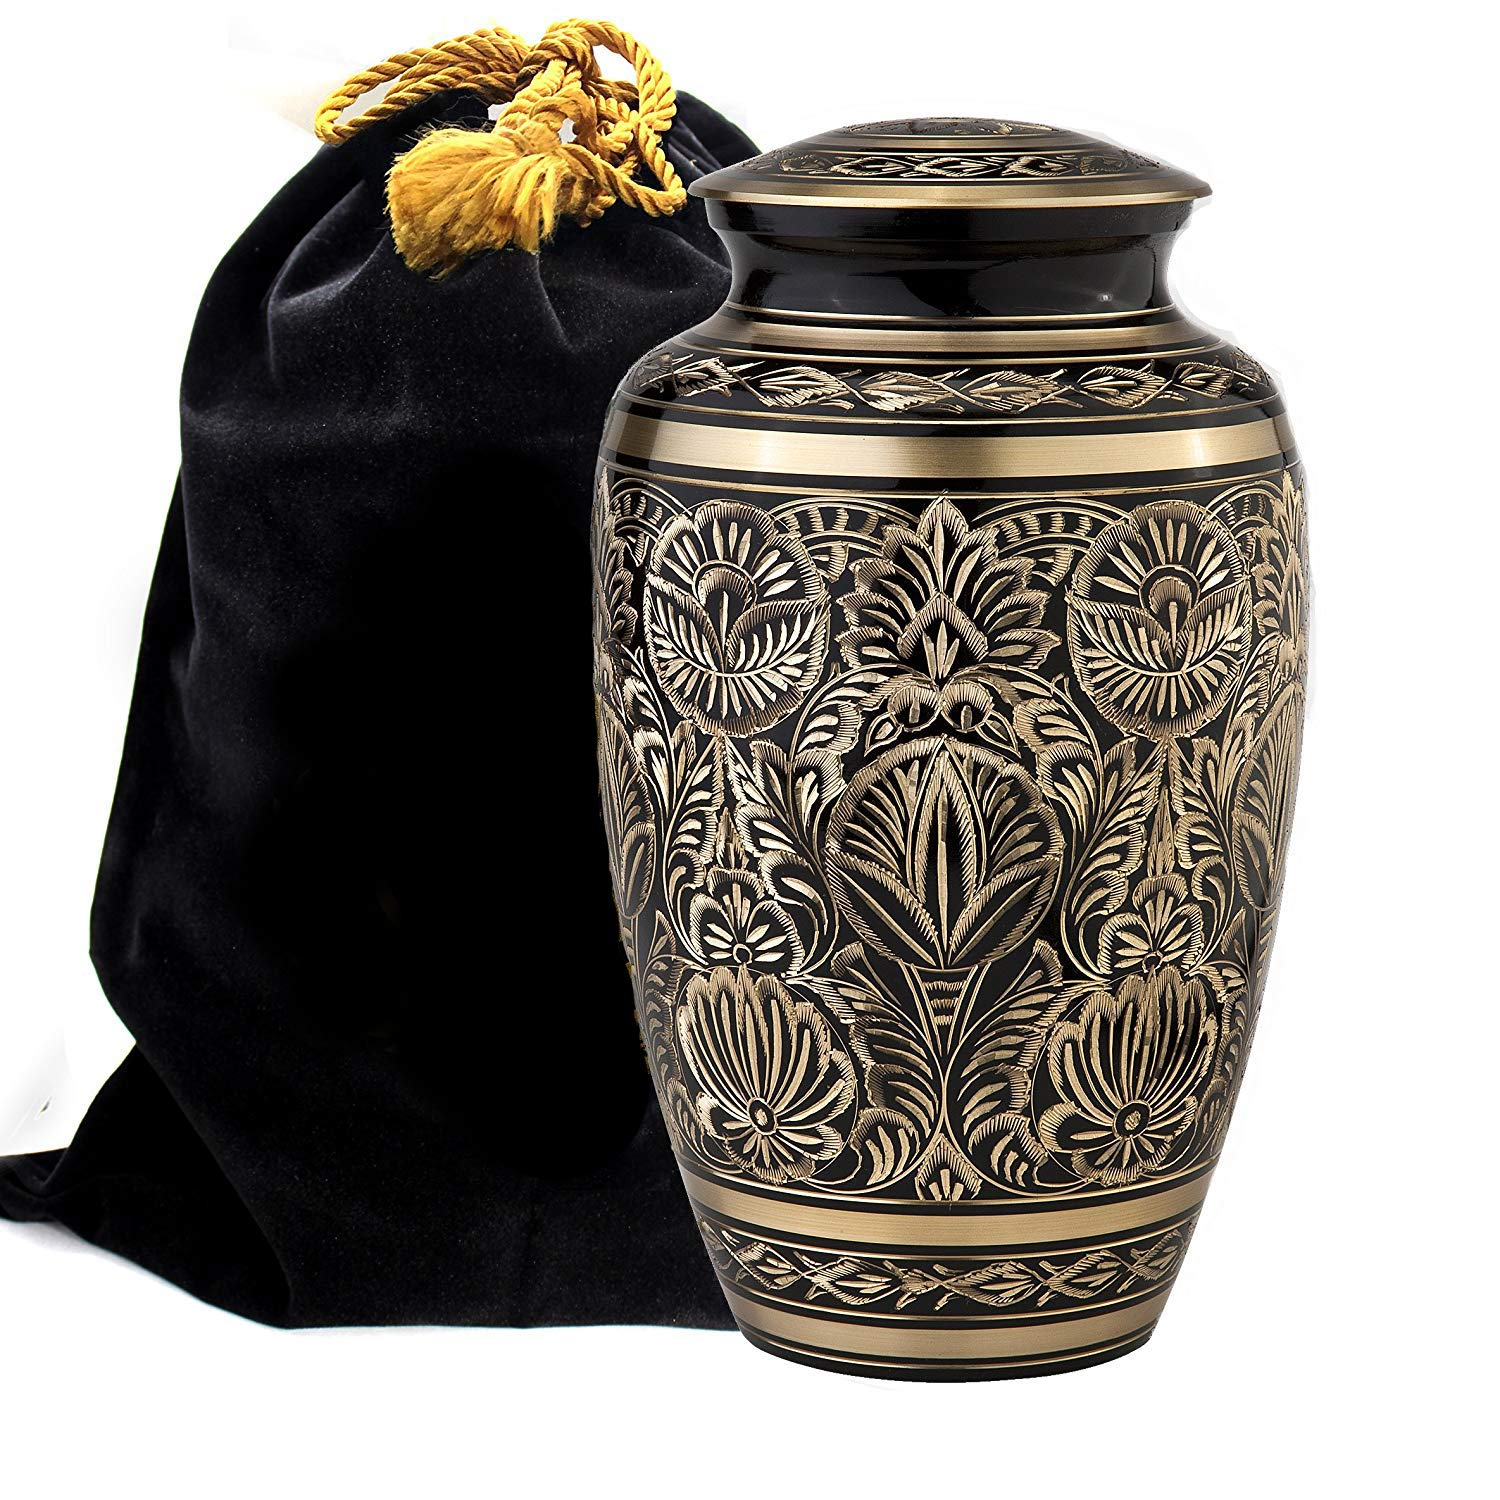 Majestic Radiance 100% Brass Cremation Urn for Human Ashes Large and Small (Large)...